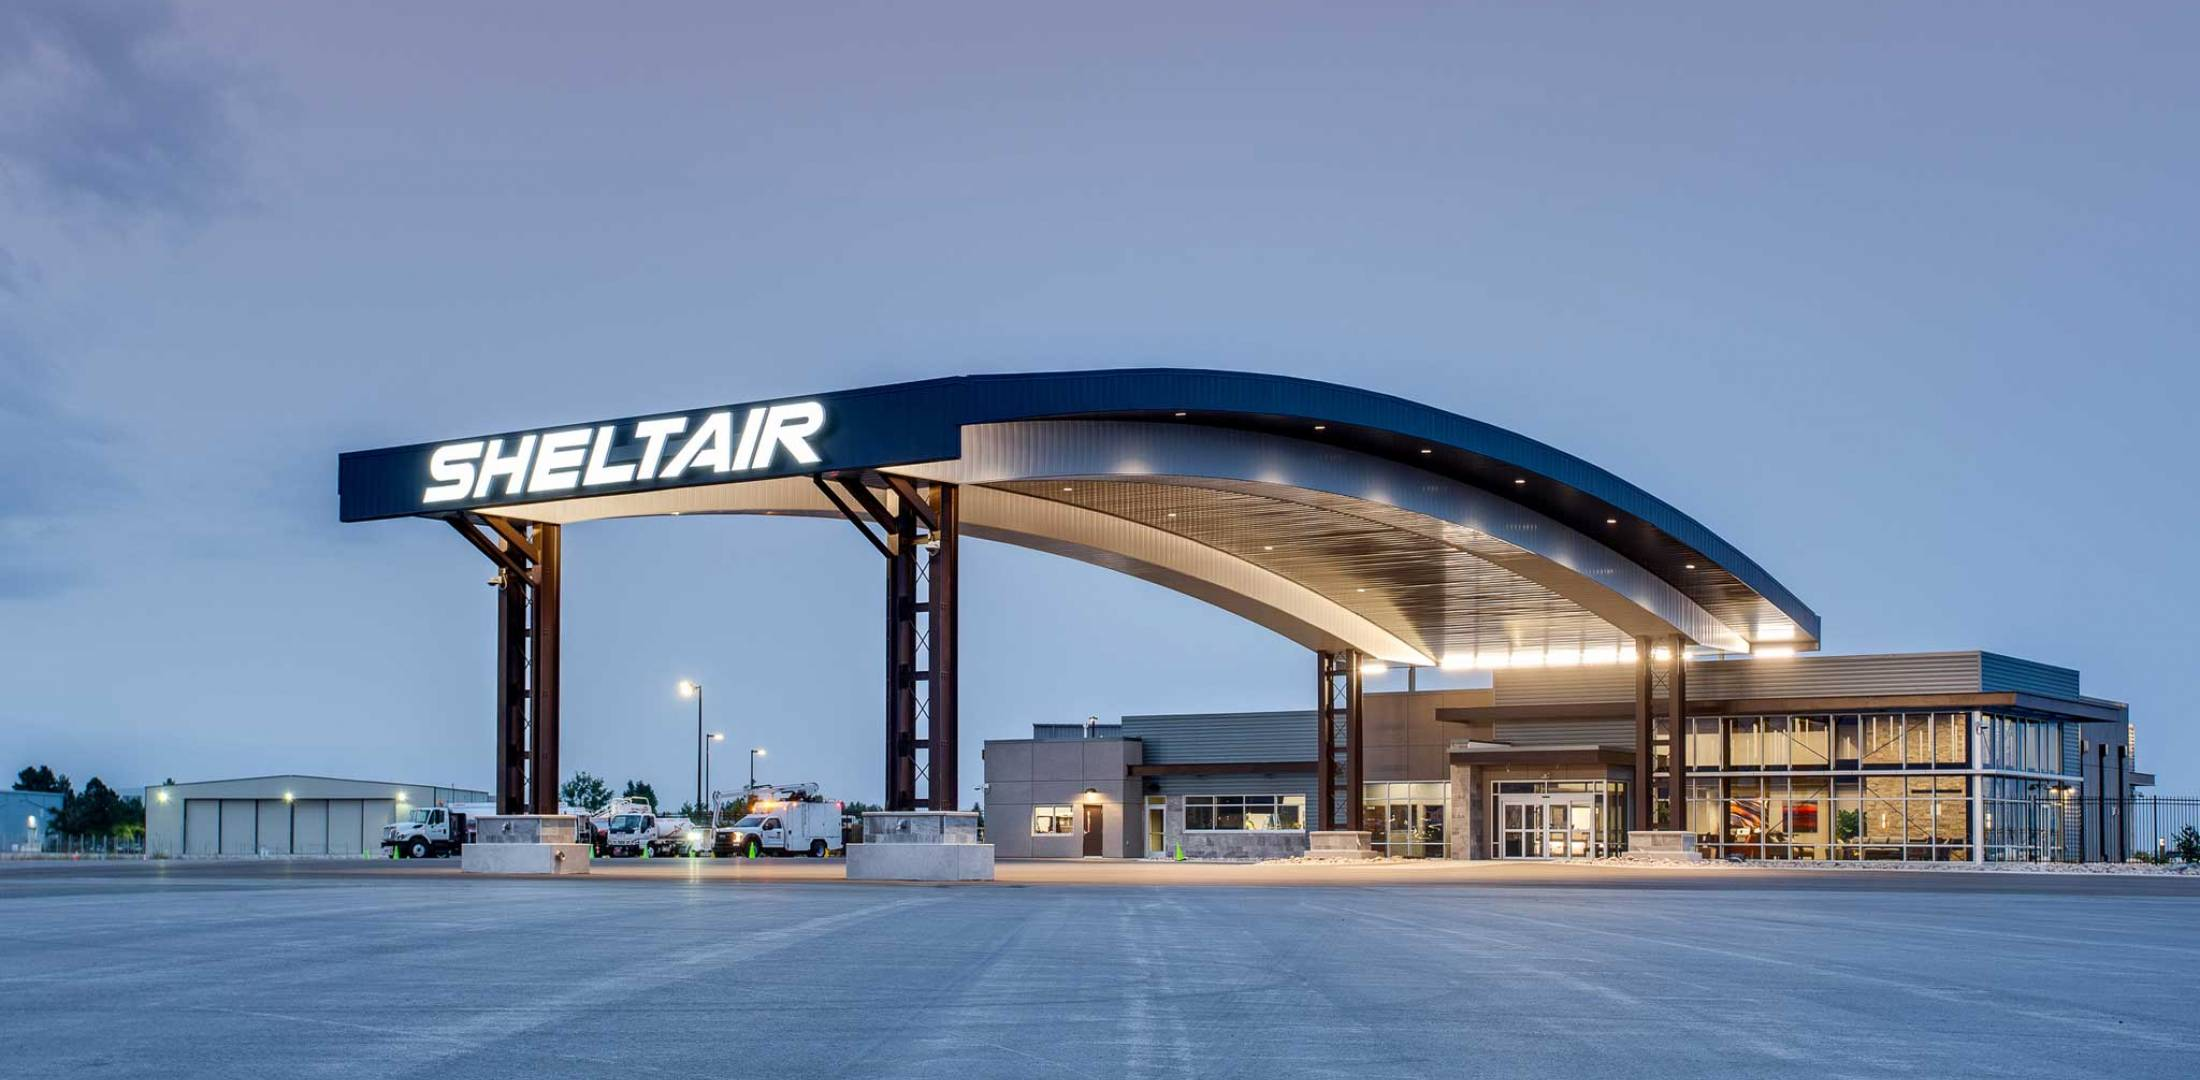 Sheltair's New FBO in Colorado